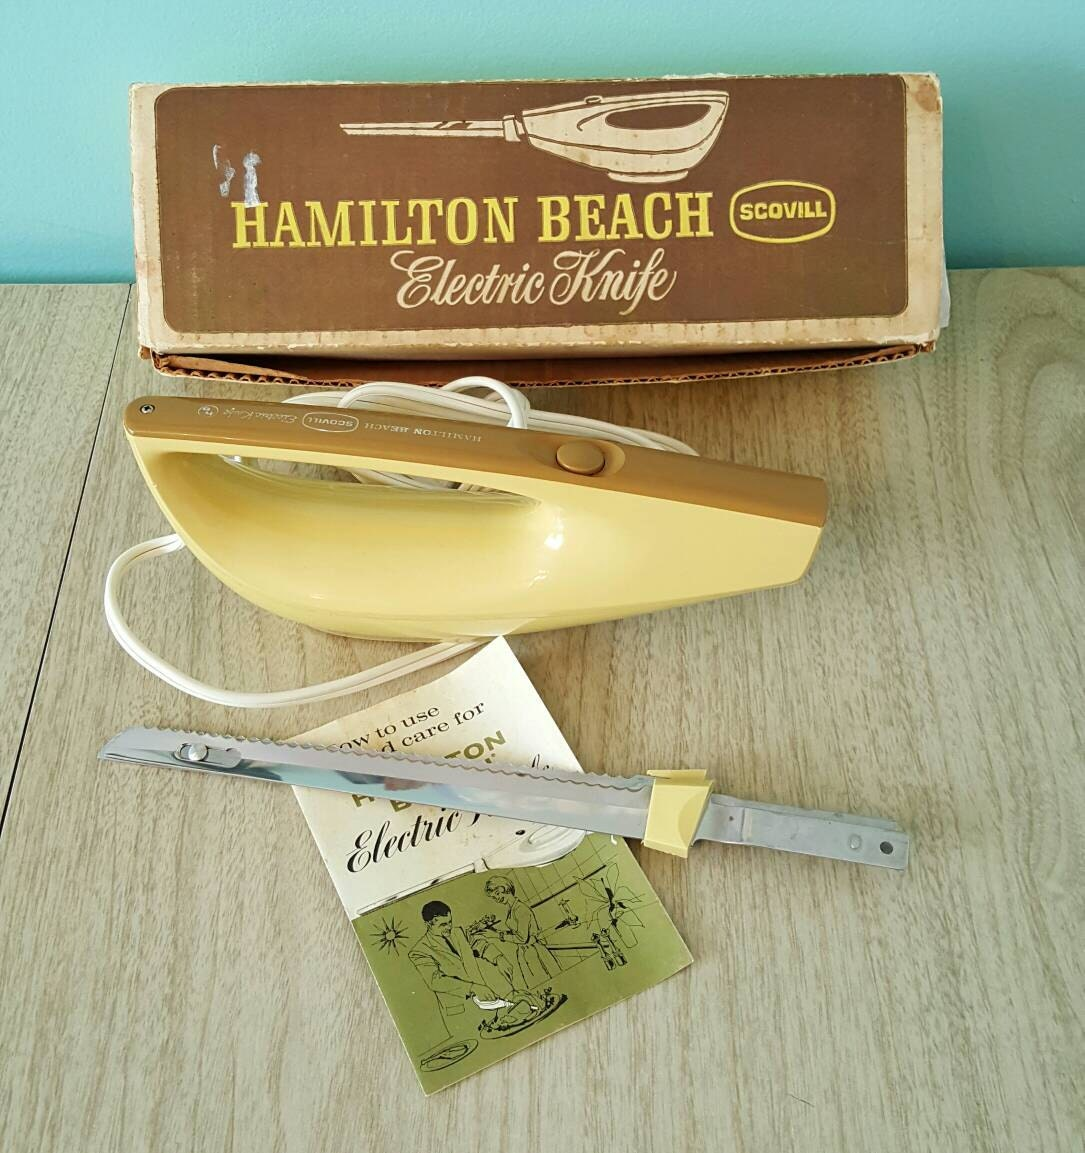 hamilton beach scovill electric knife model 275 manual